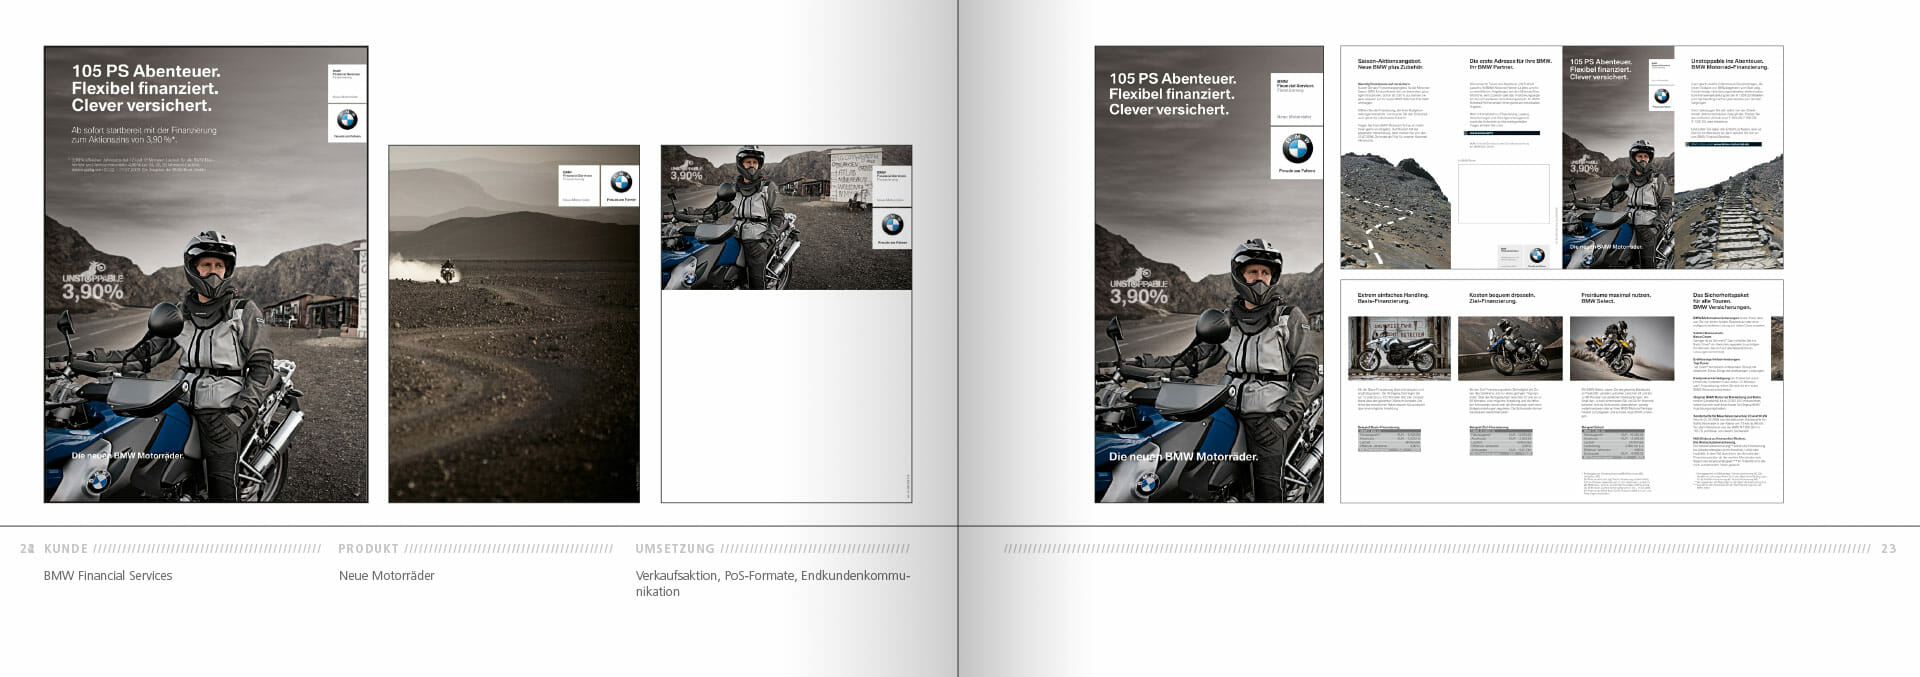 BMW Group Works 2001-2009 Booklet 22-23